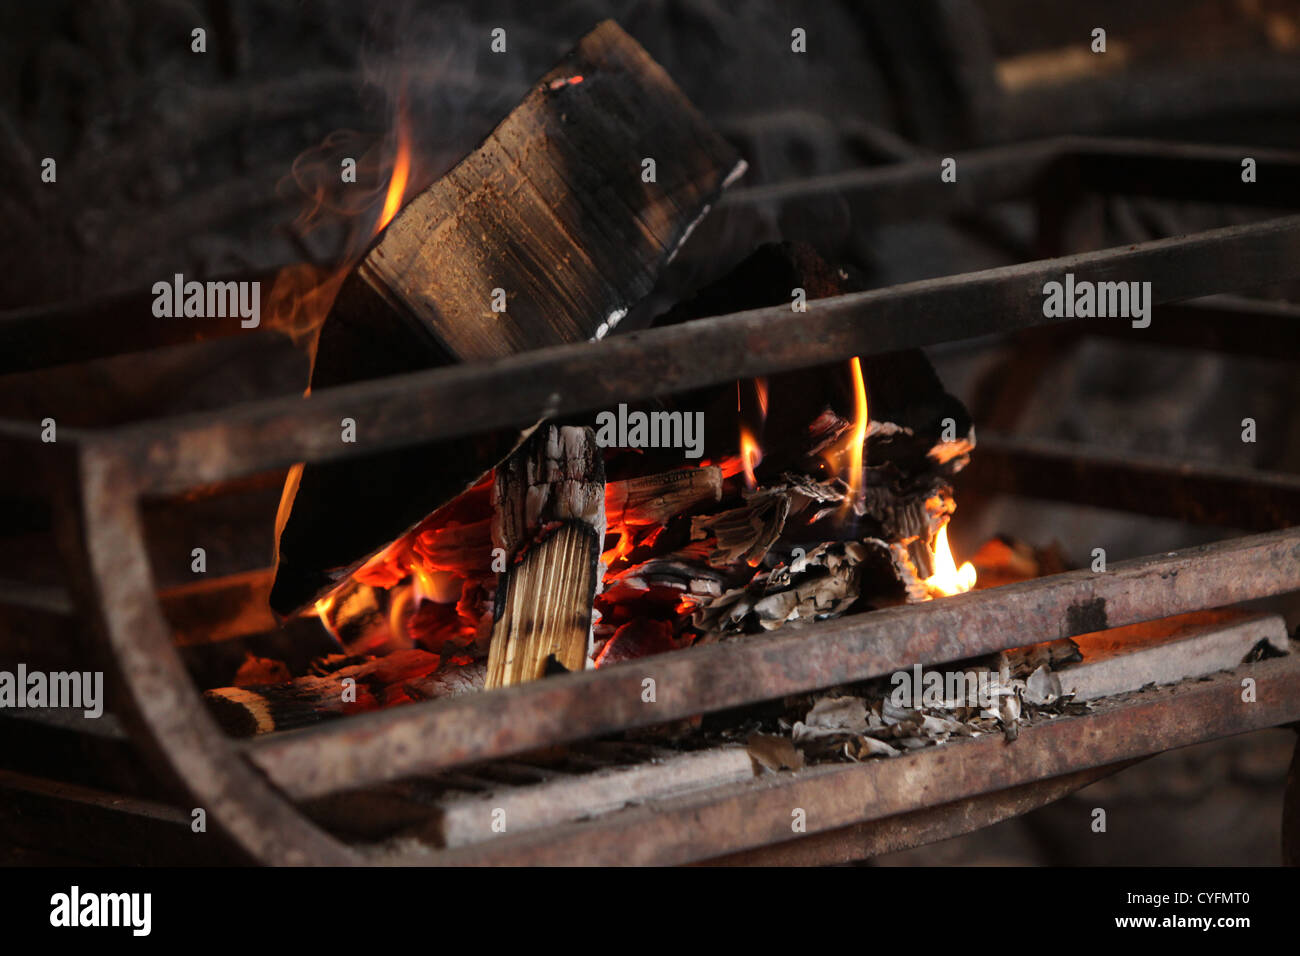 Fire burning at The Lamb pub in Angmering, Sussex, UK. - Stock Image